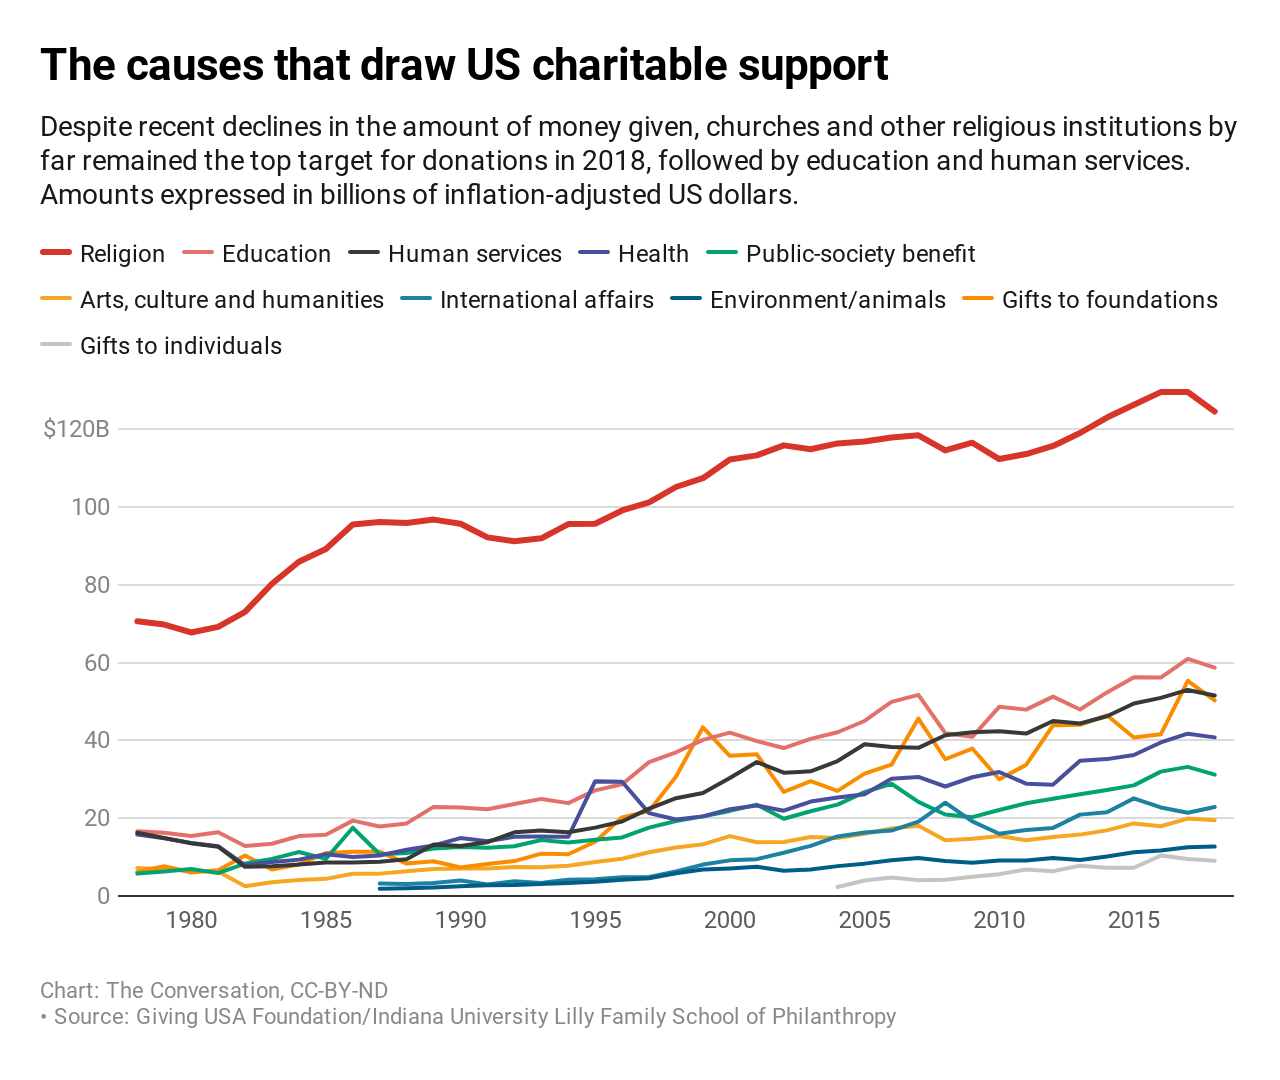 causes-that-draw-us-charitable-support chart